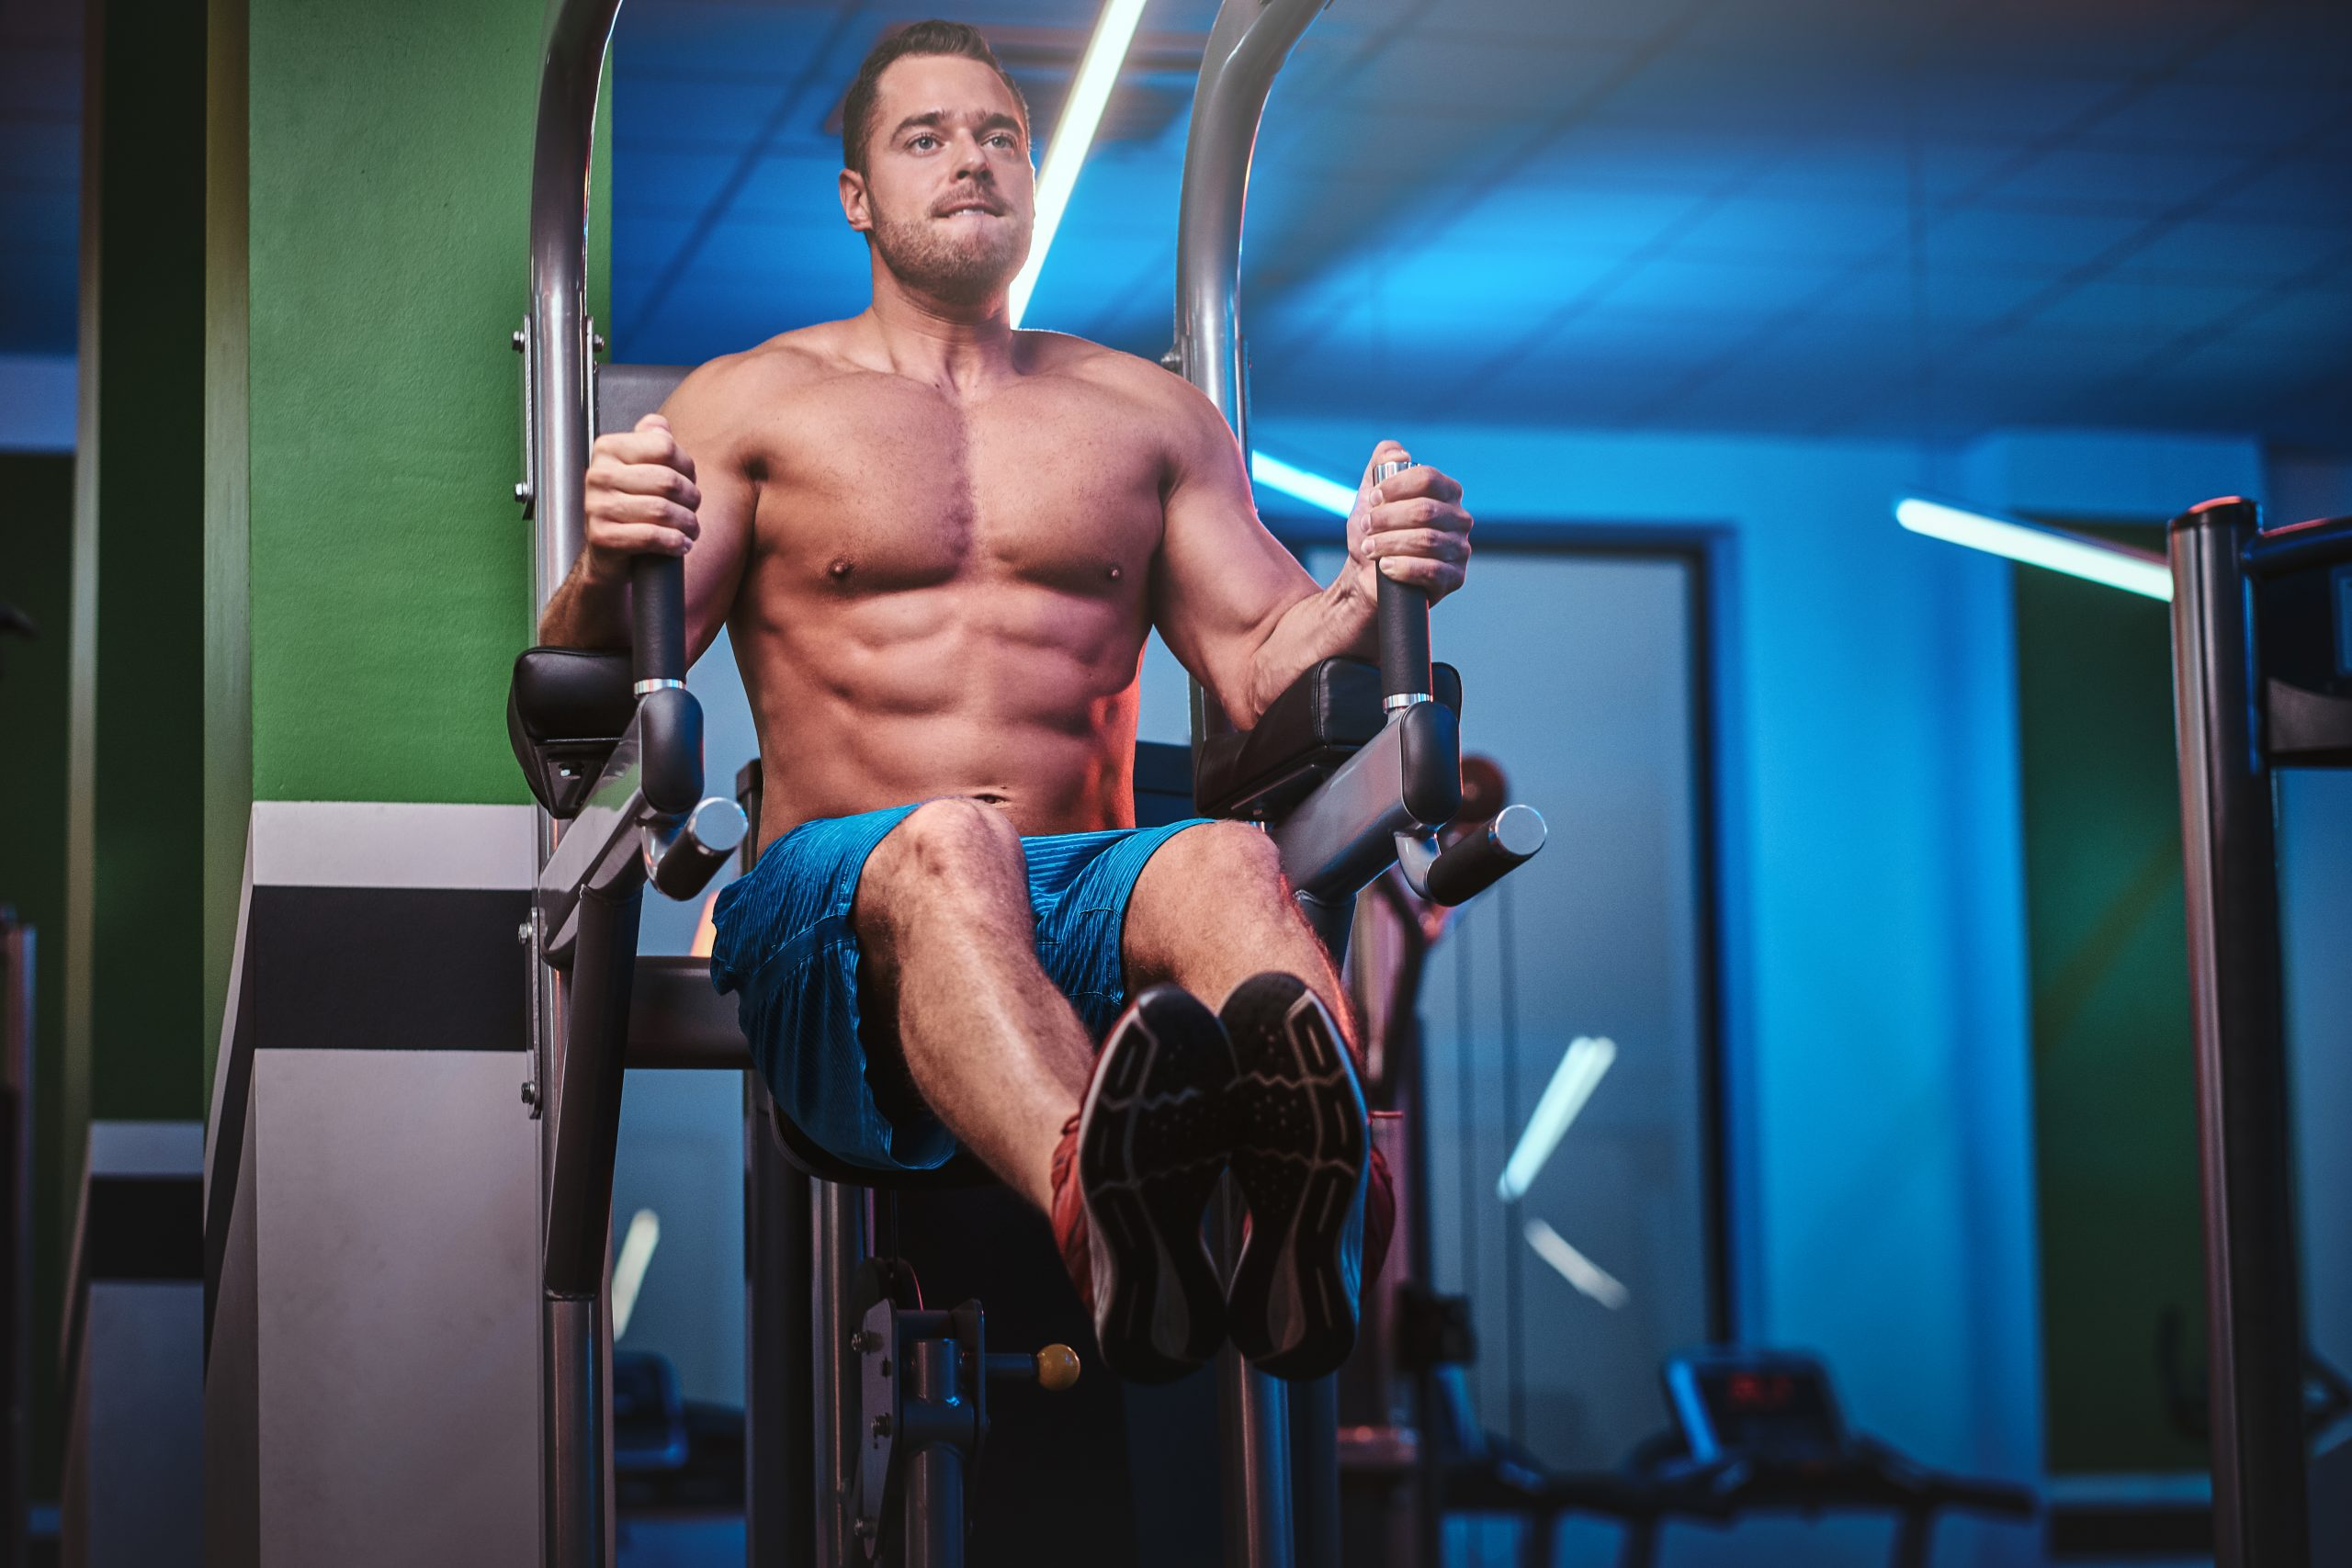 chaise romaine musculation